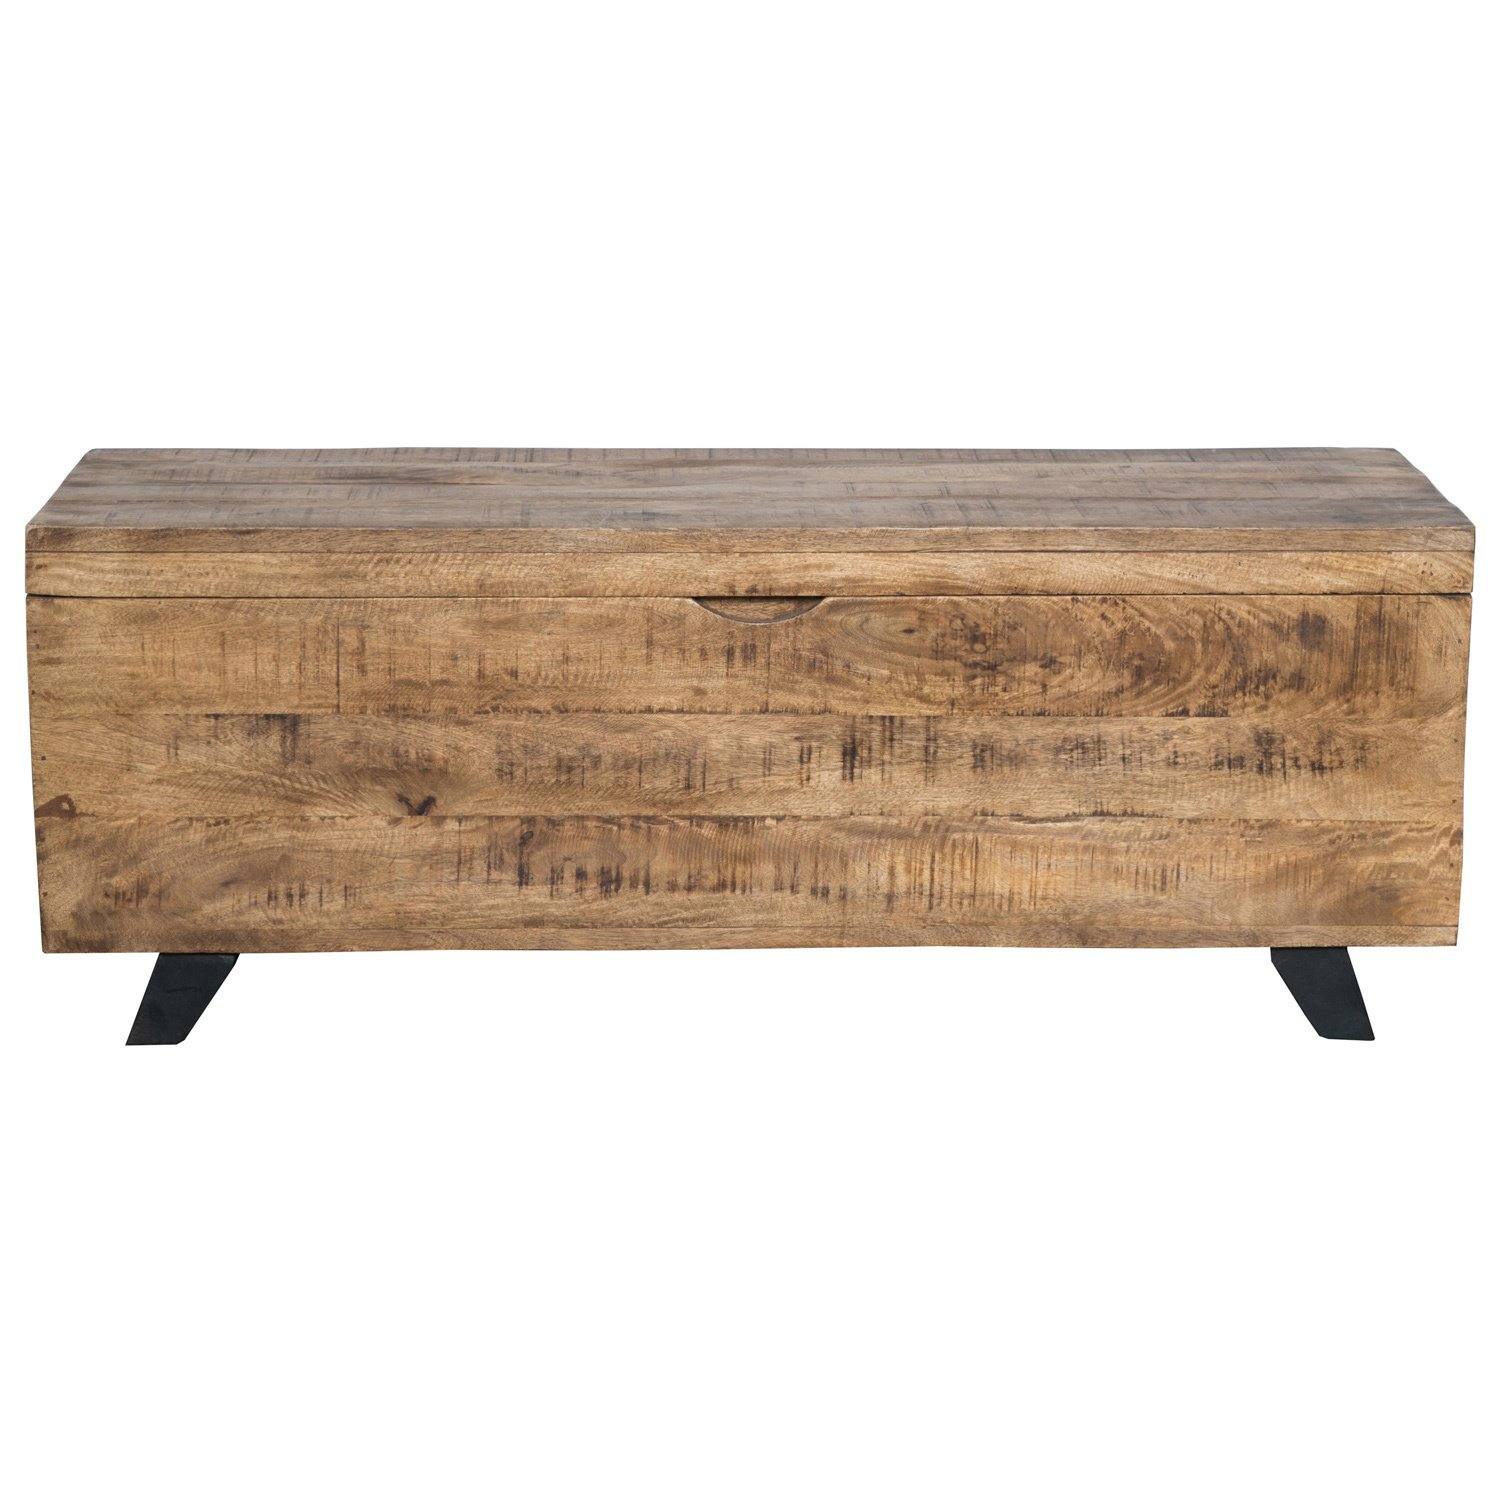 carbon loft henrietta mid century raw mango wood storage chest pine canopy pike harrietta piece accent table set free shipping today floor threshold vintage tier console with